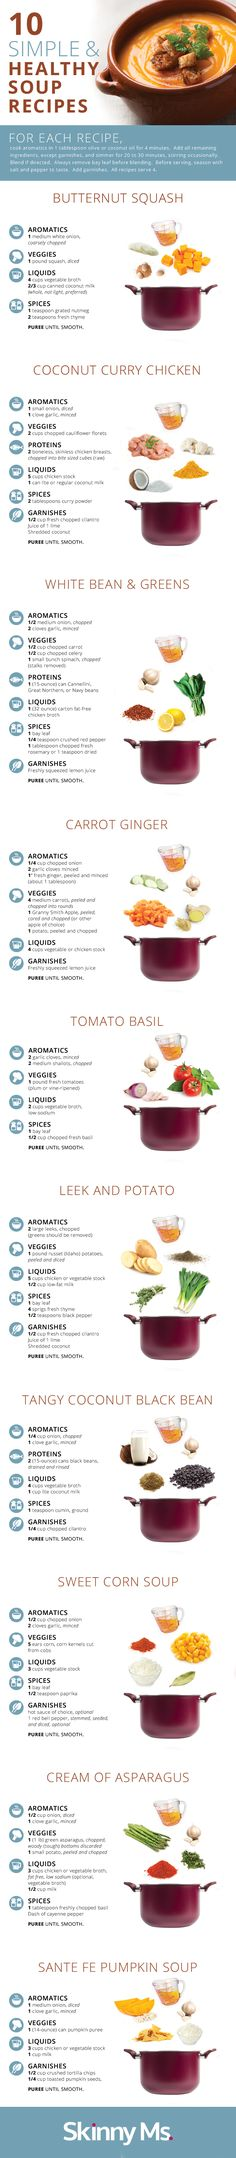 10 Simple and Healthy Soup Recipes